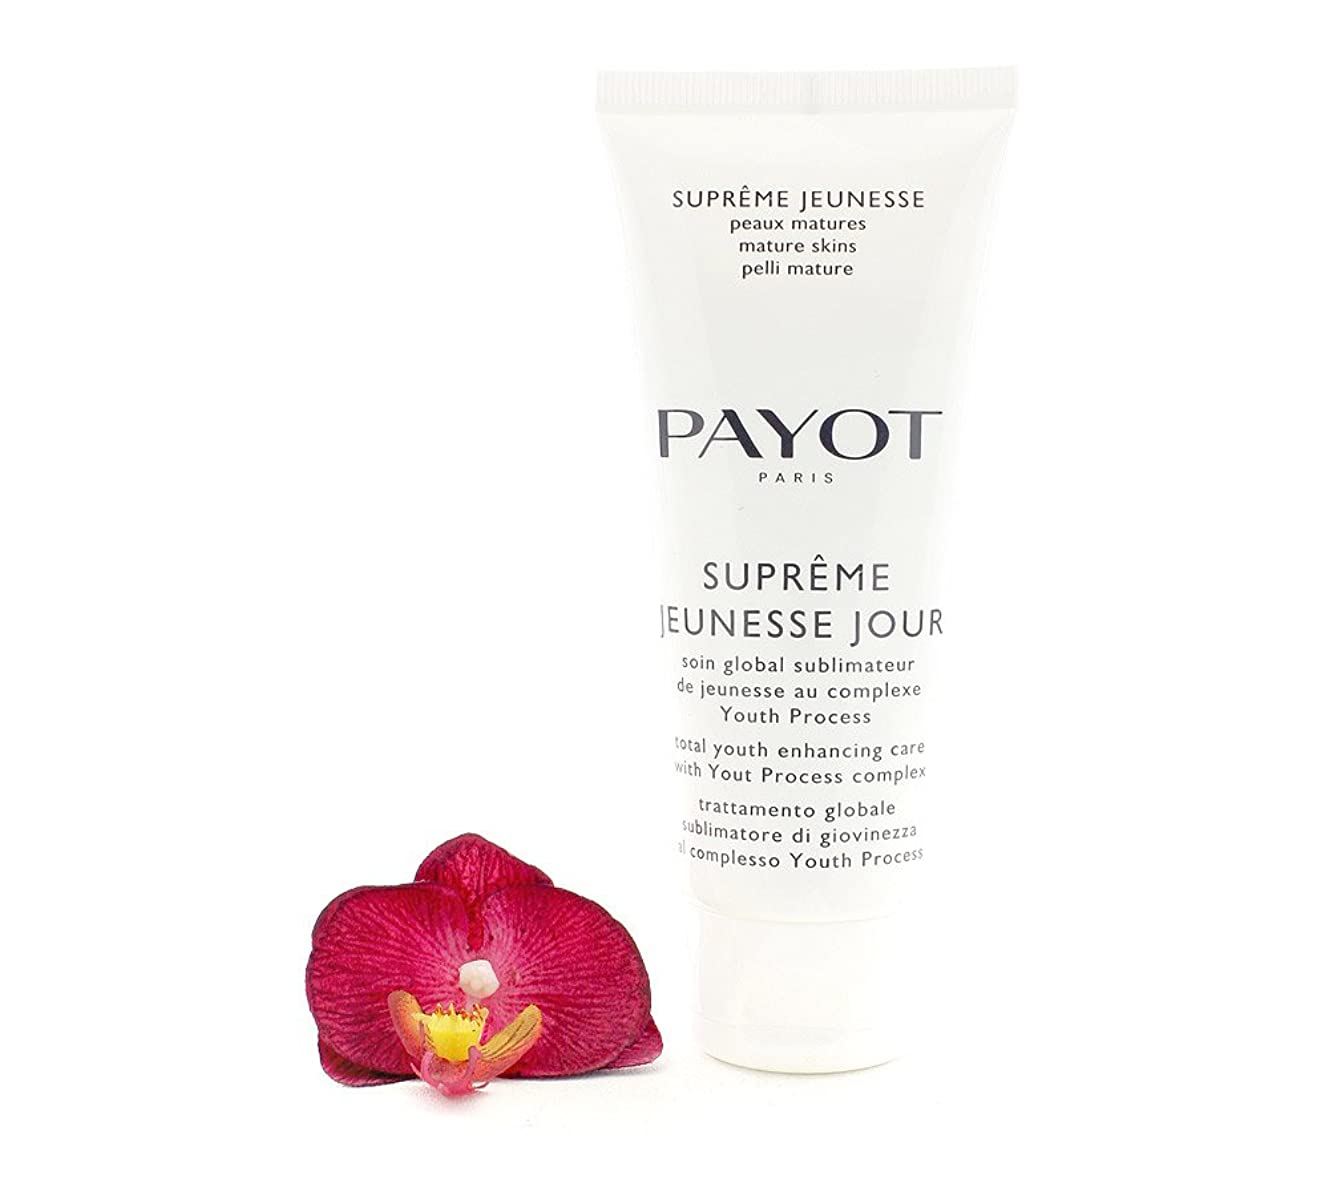 こどもの宮殿所得サンダーPAYOT Supreme Jeunesse Jour Total Youth Enhancing Care Cream 100 ml / 3.3 Fl.oz. - SALON SIZE